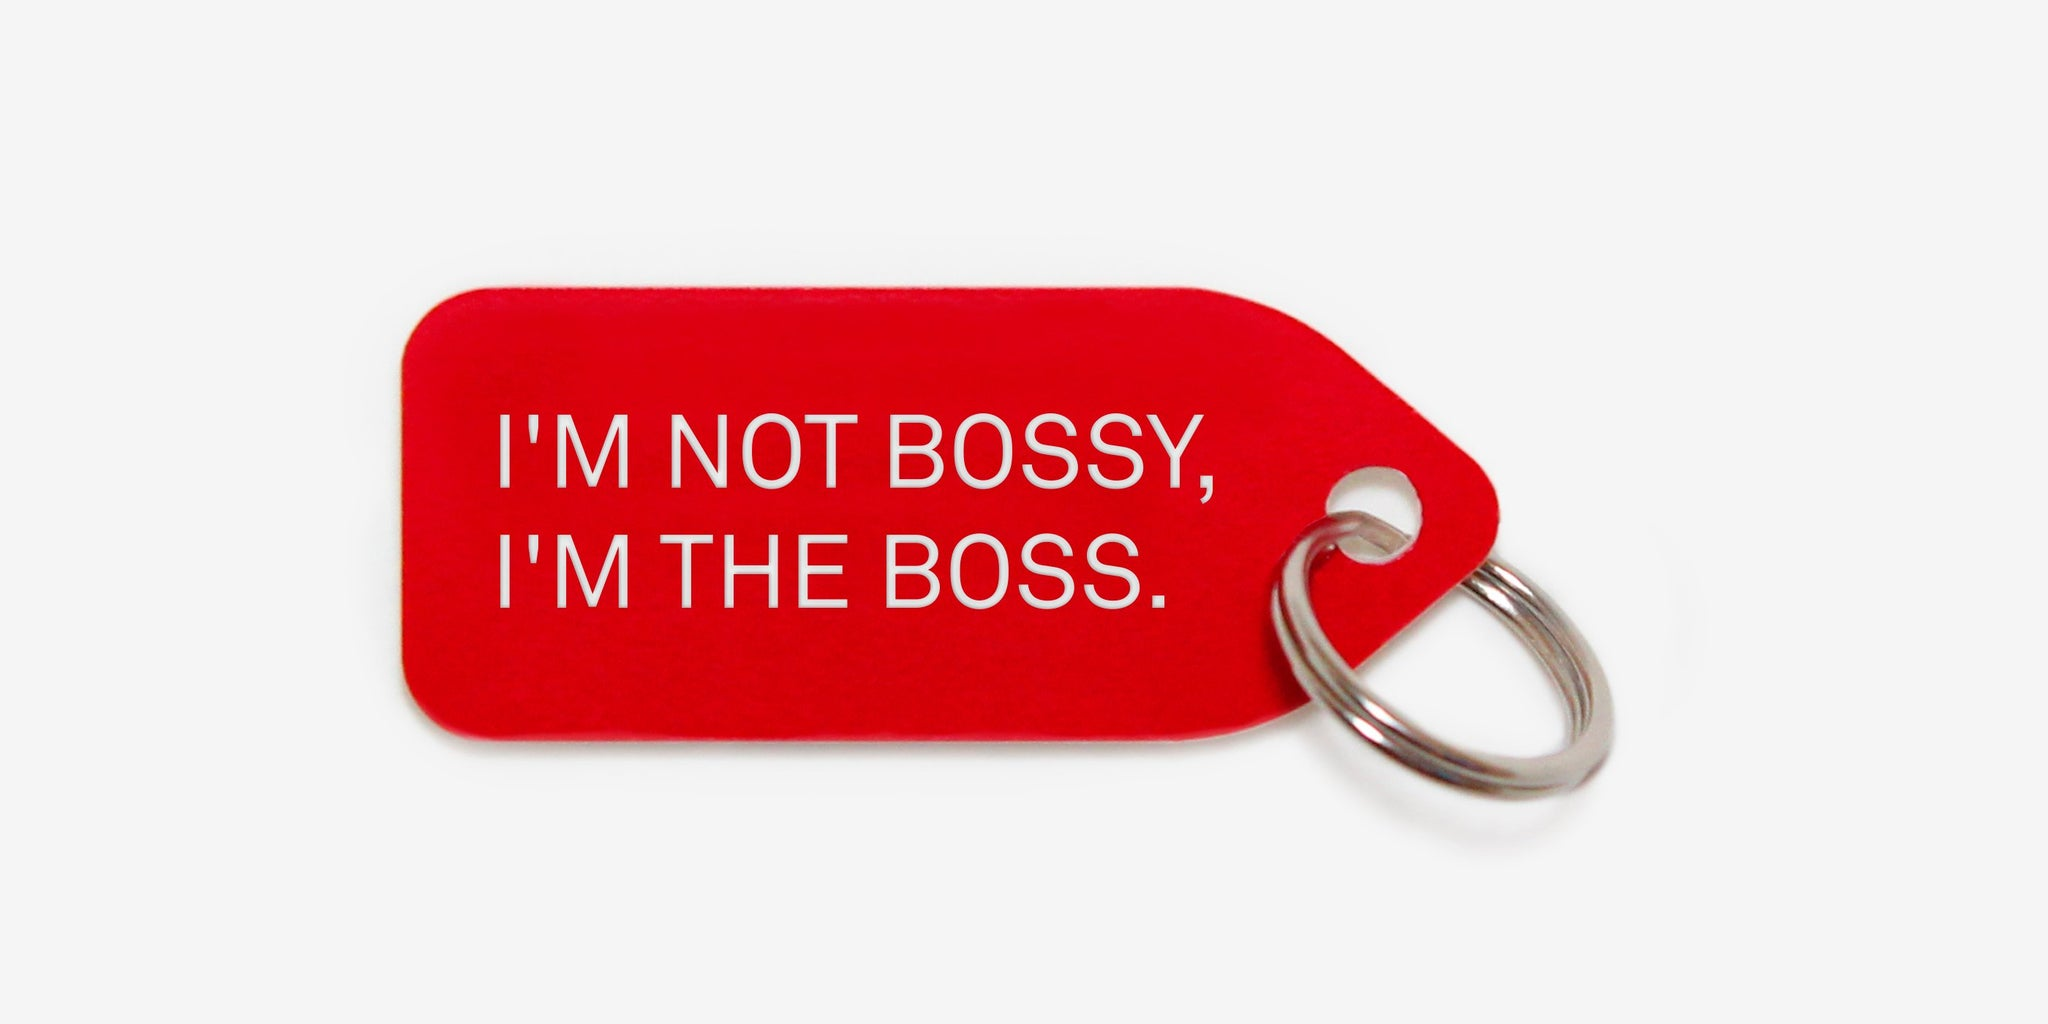 I'm not bossy, I'm the boss | dog tag | collar charm | by Growlees